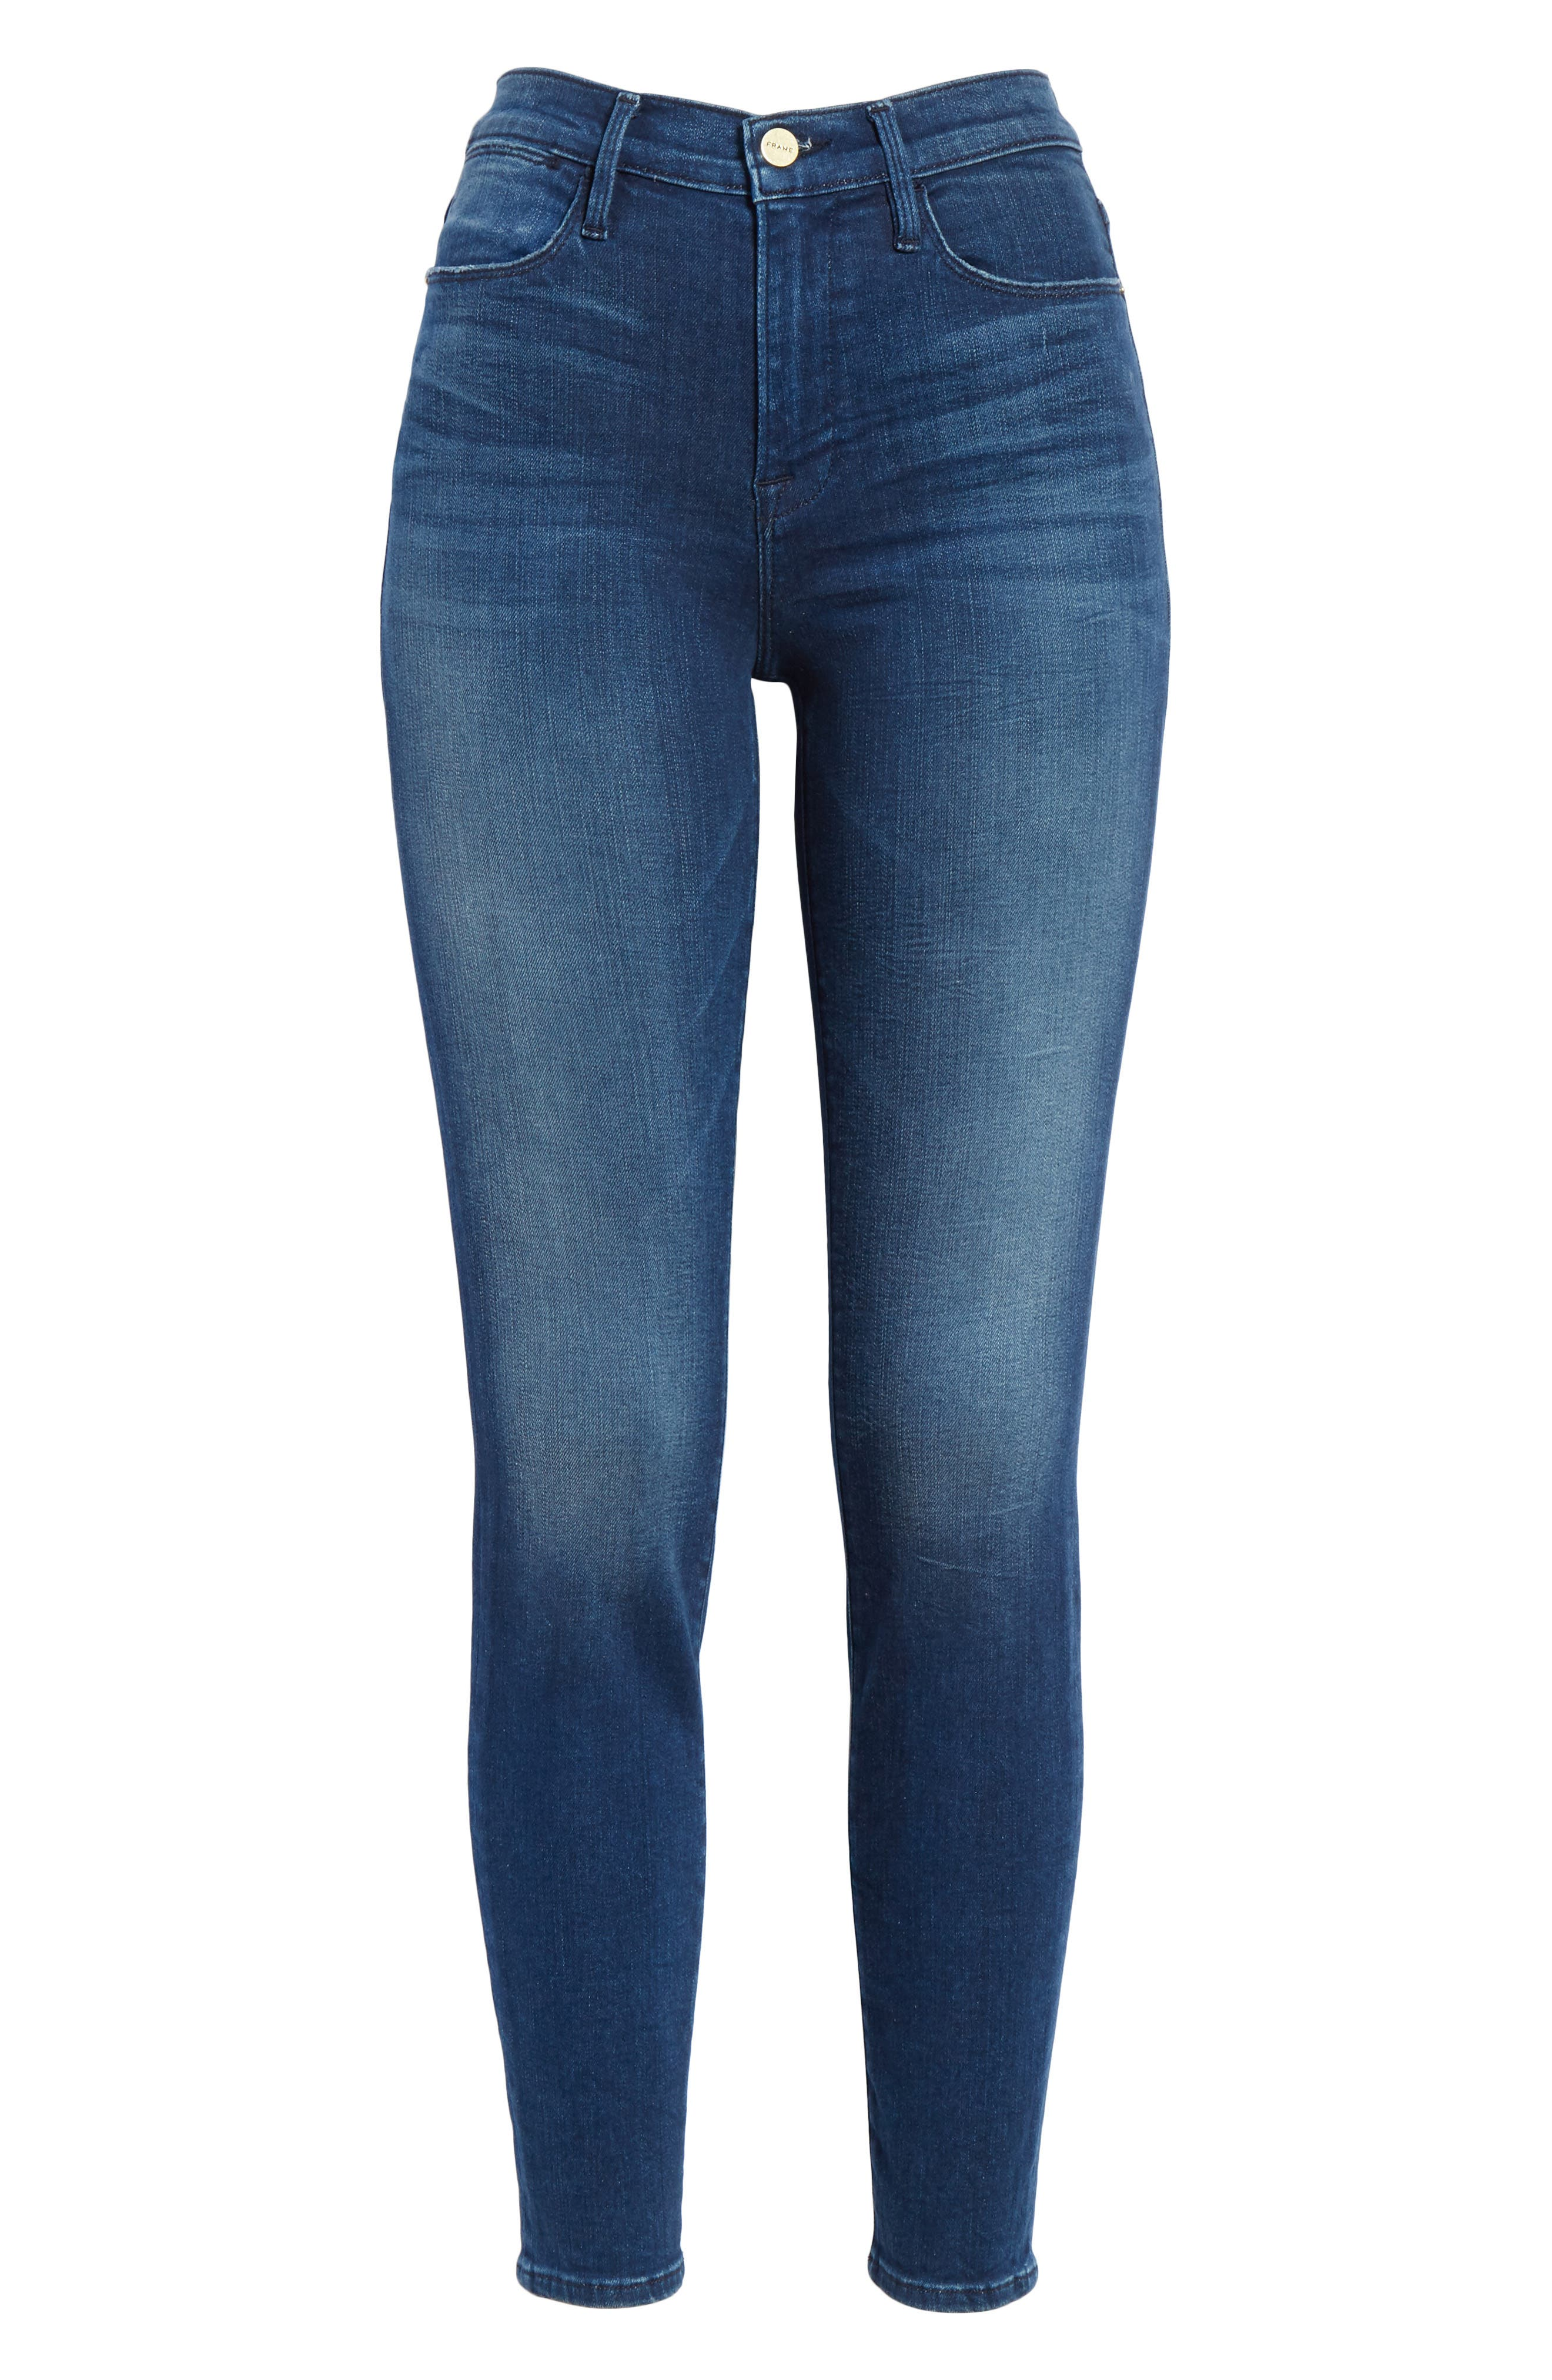 Le High Ankle Skinny Jeans,                             Alternate thumbnail 6, color,                             Silver Spring